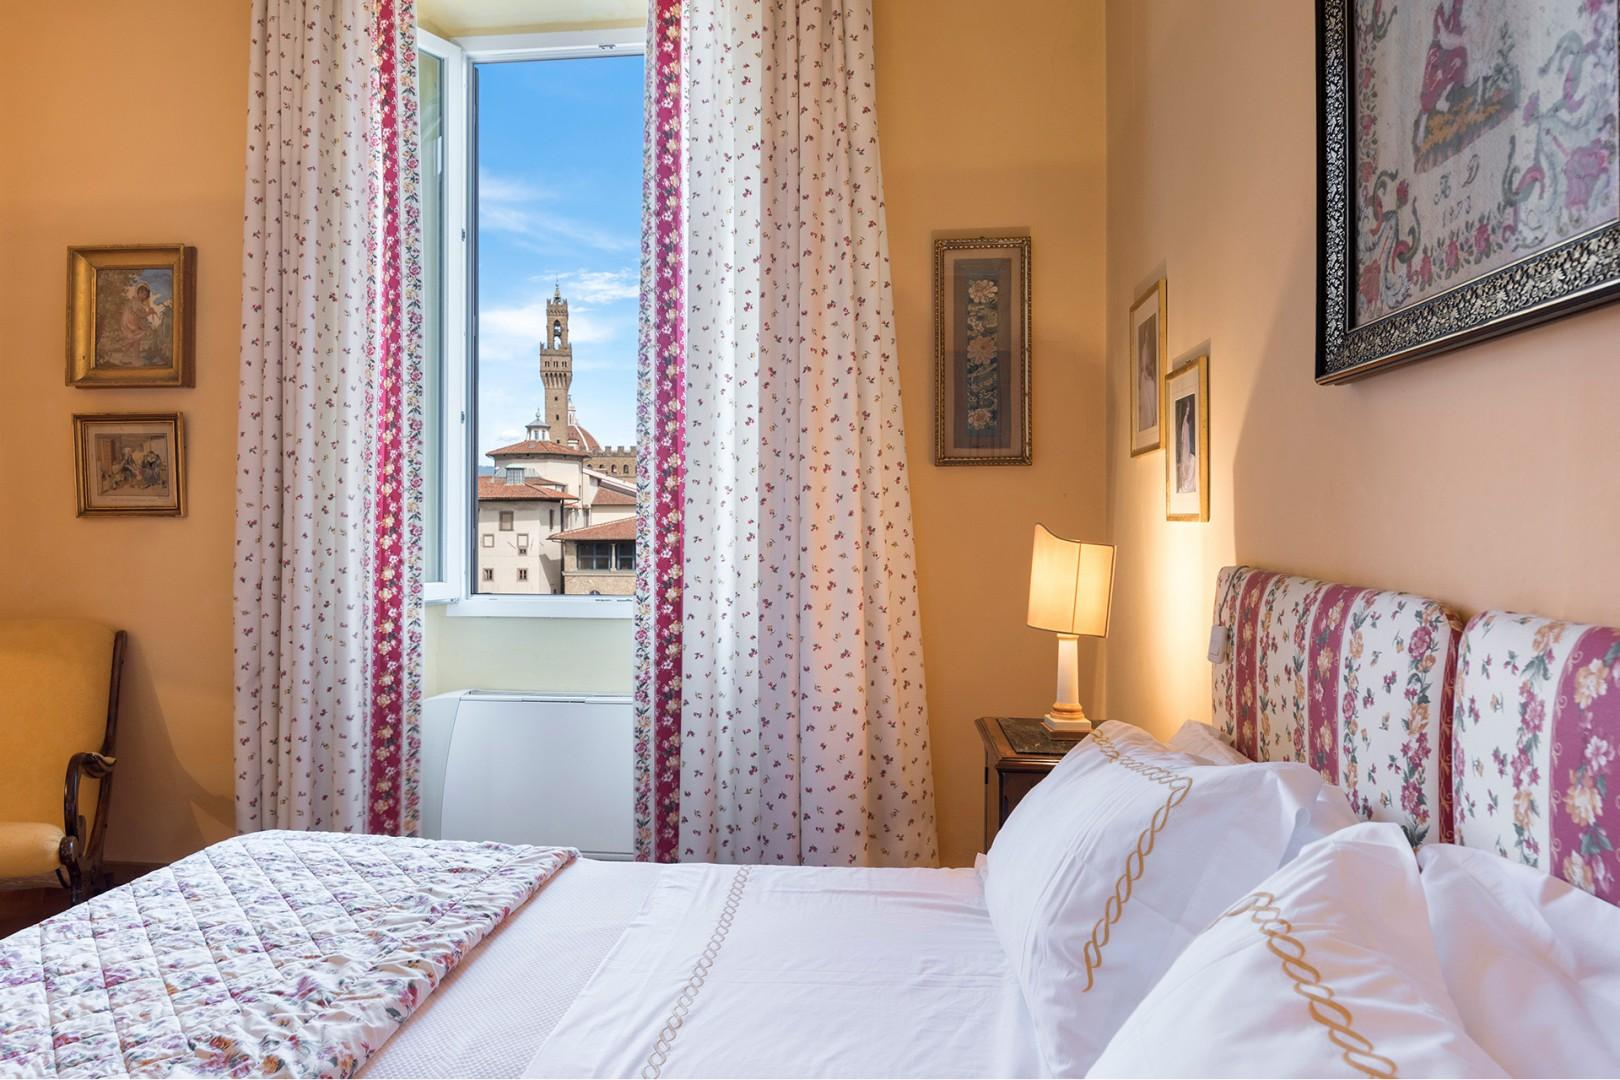 Sunny bedroom 1 has gorgeous Arno River views. See the bell tower of Palazzo Vecchio in this photo.